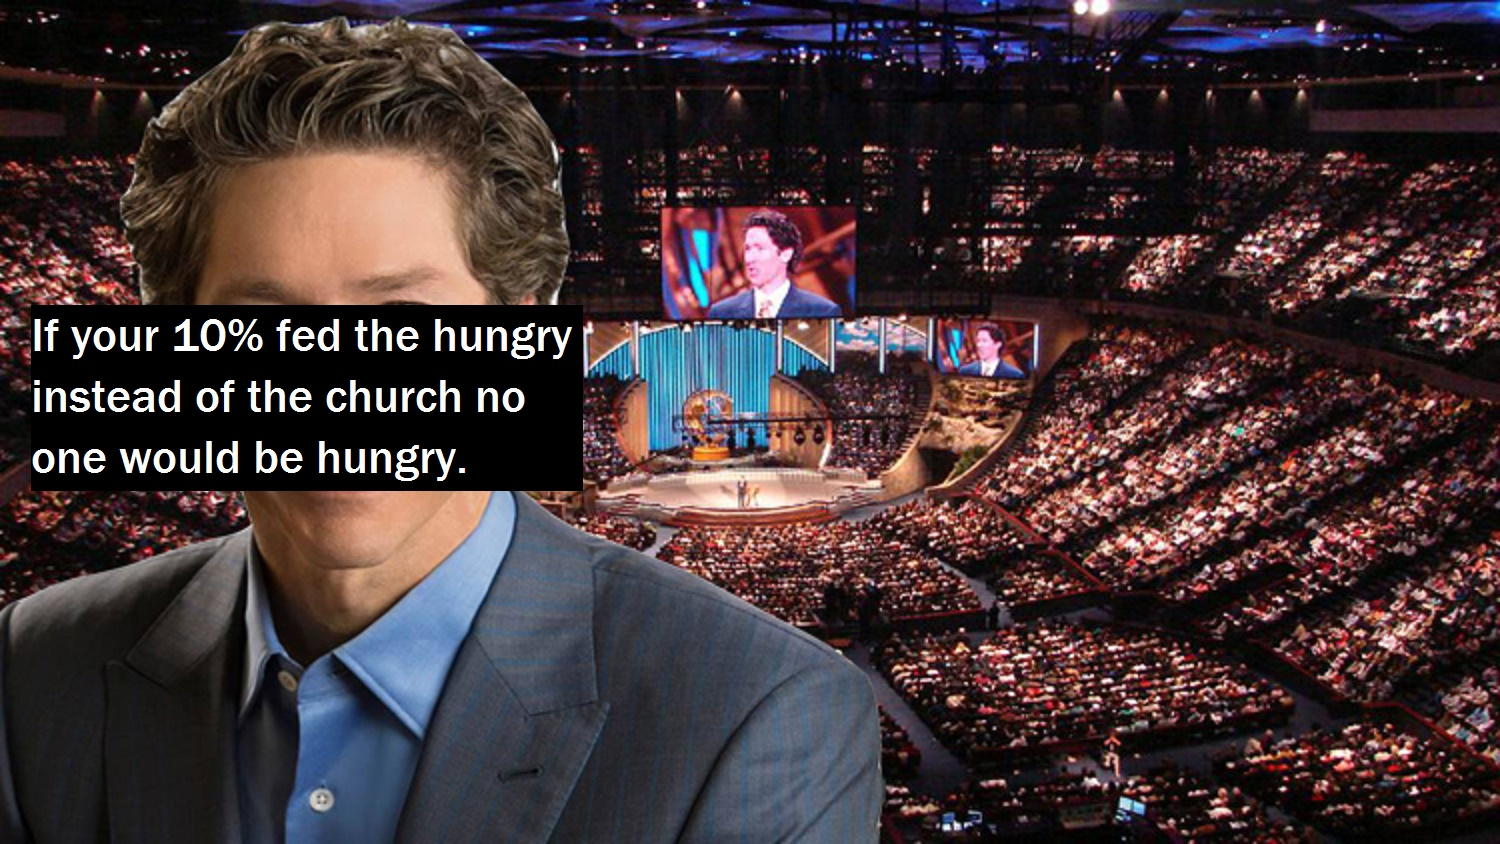 If your 10% fed the hungry instead of the church no one would be hungry.